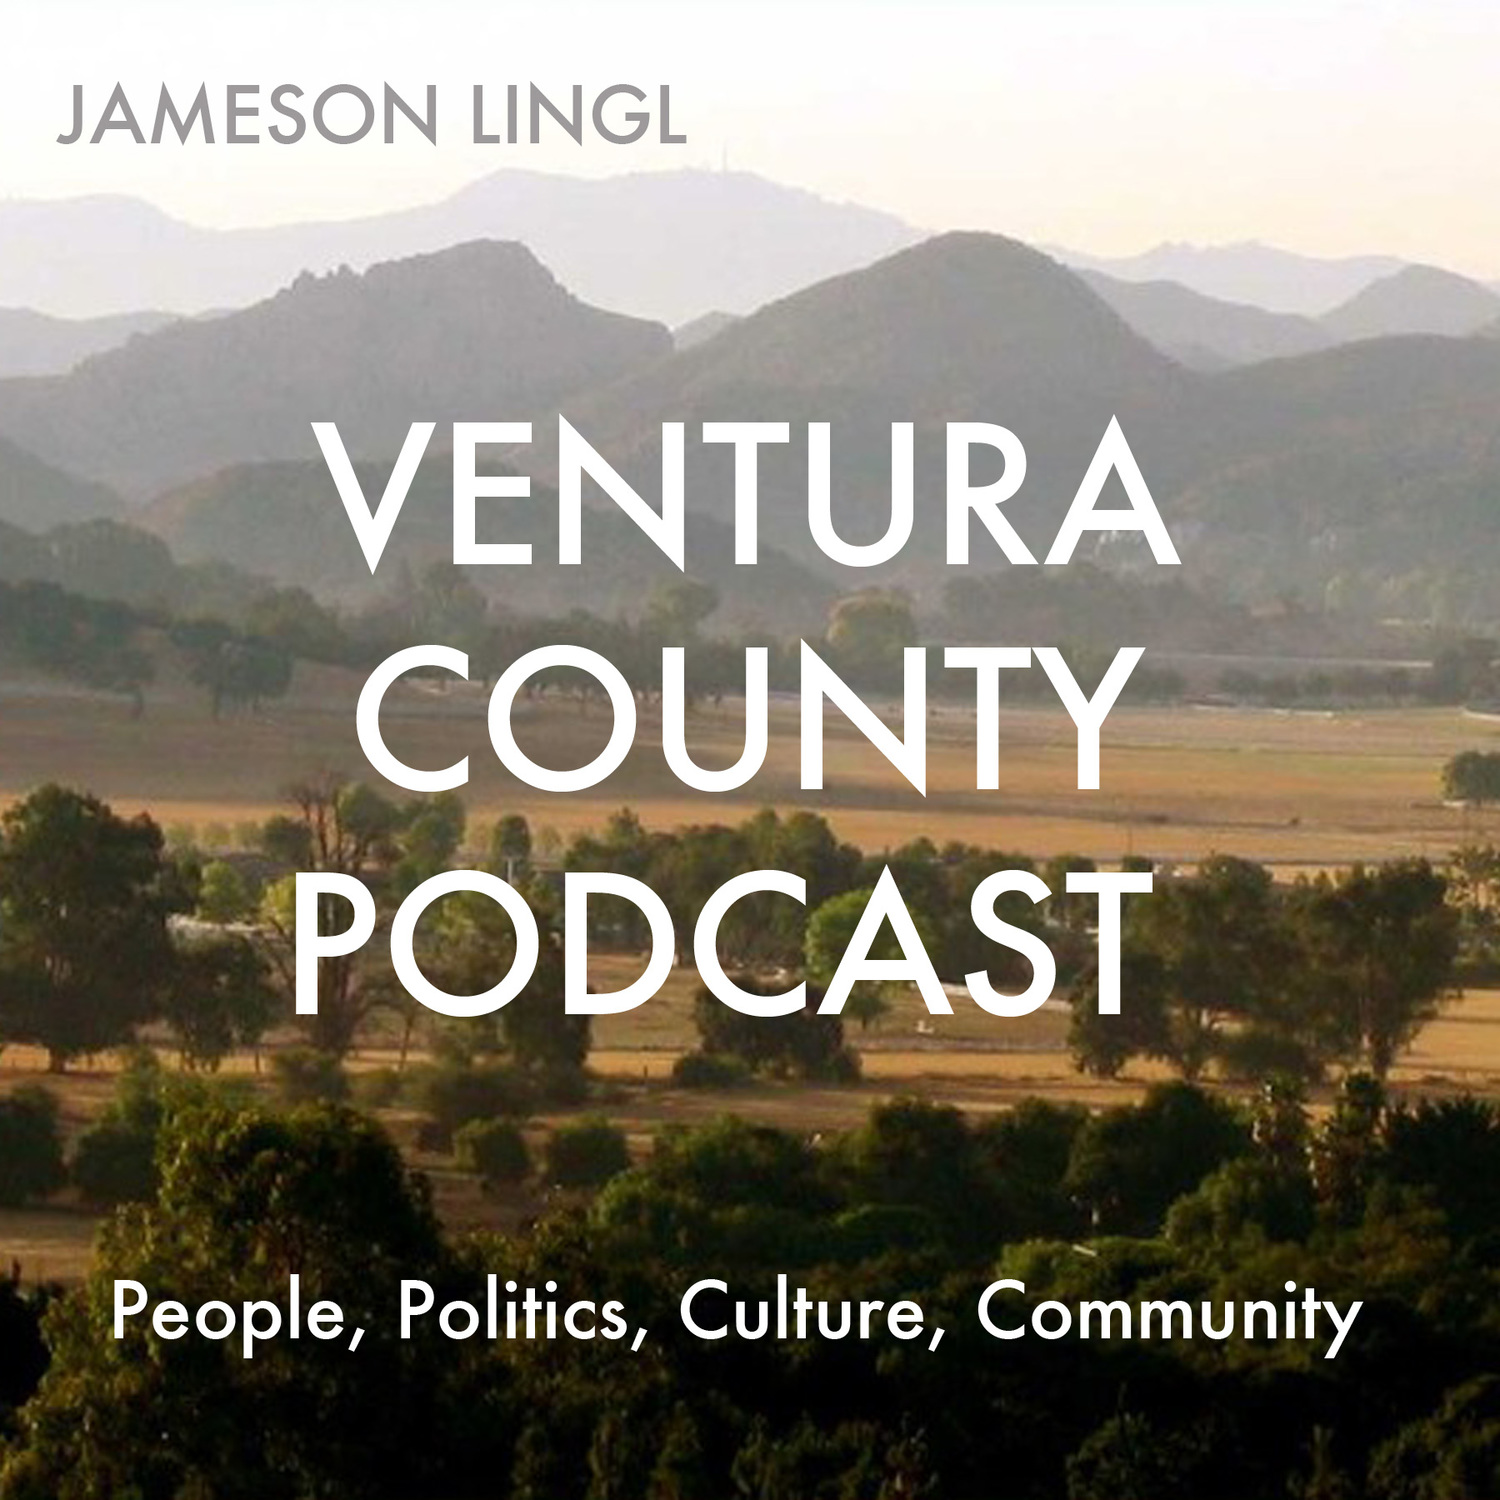 Podcast - Ventura County Podcast